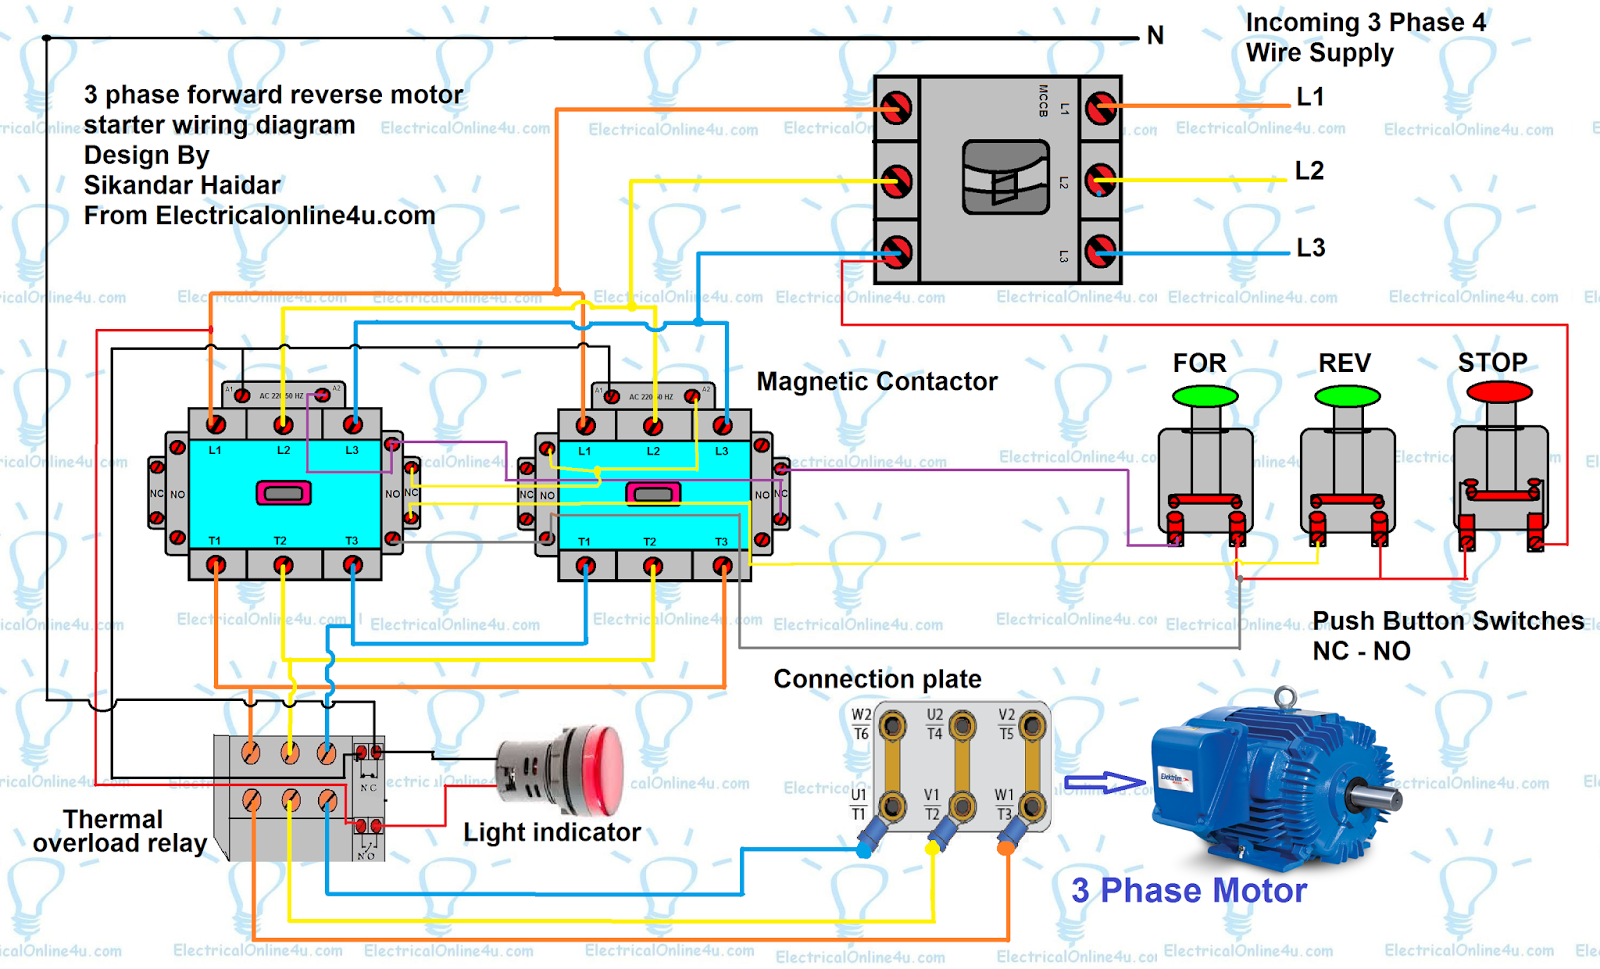 how to wire voltmeter in 3 phase wiring electrical online 4uwrg 4232 wire schematics 3 phase transformer with a motor with a how to wire voltmeter in 3  [ 1600 x 969 Pixel ]